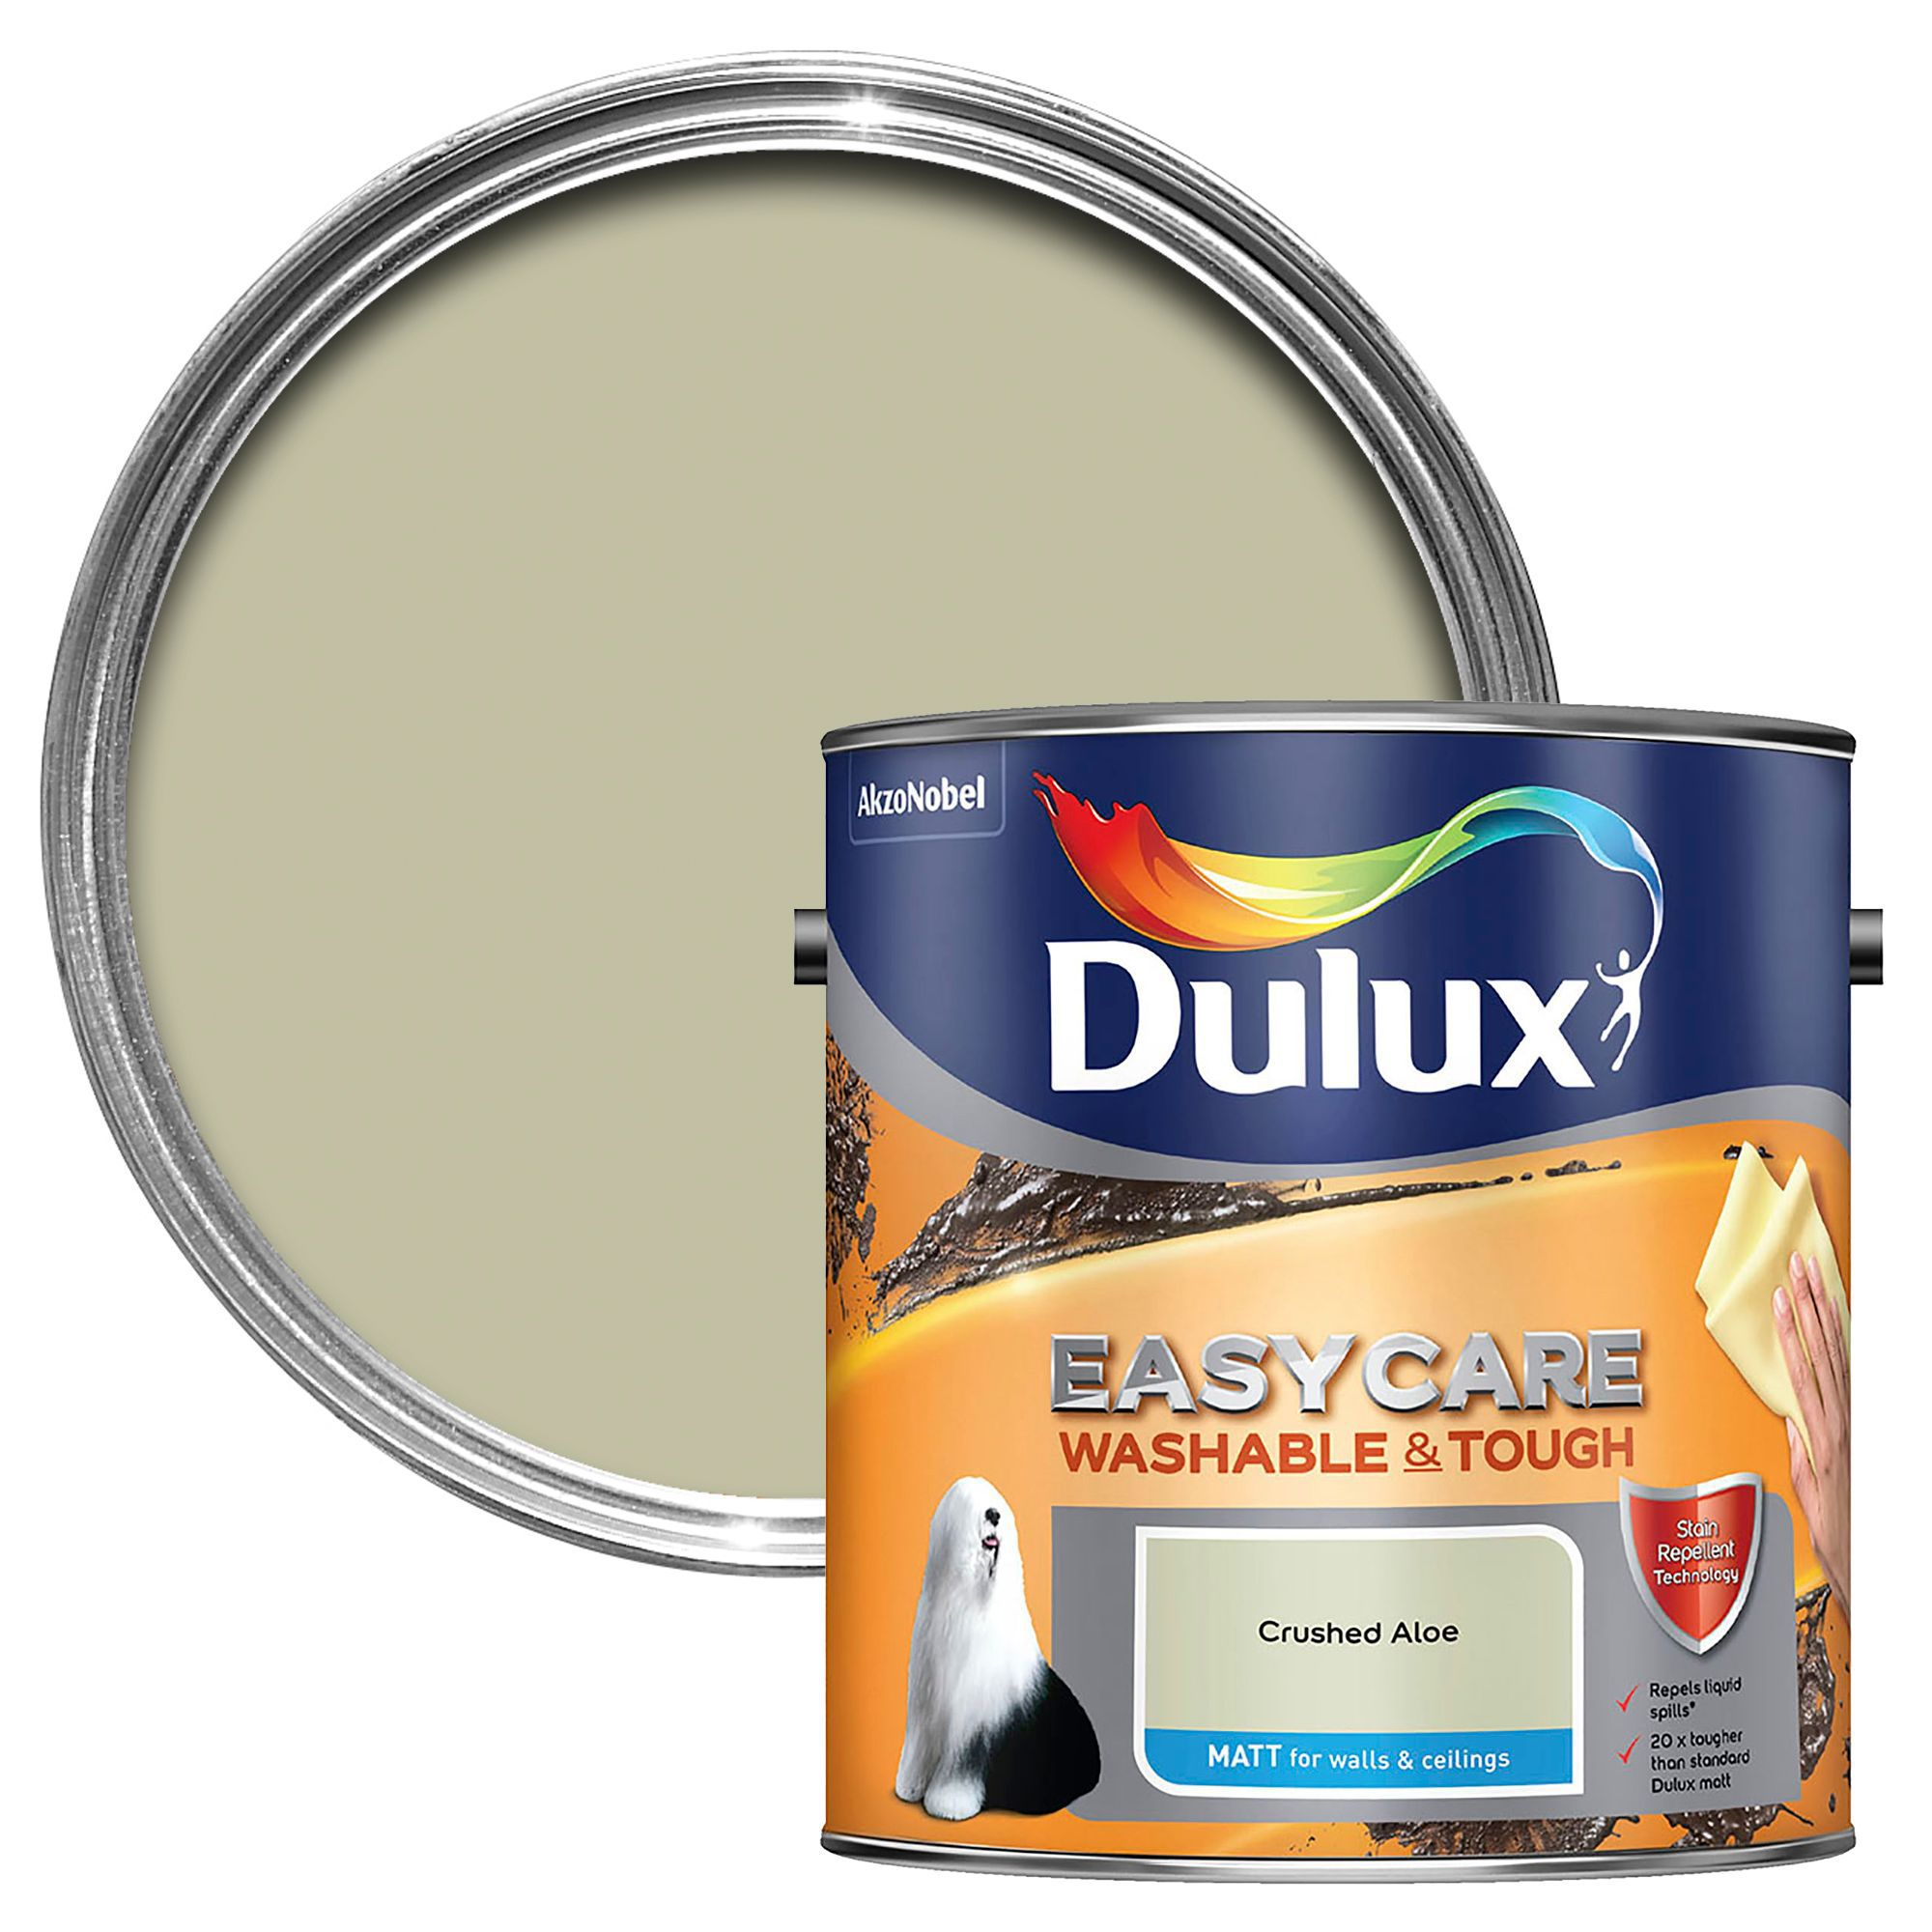 Ral Number For Dulux Paint Shadow Chic